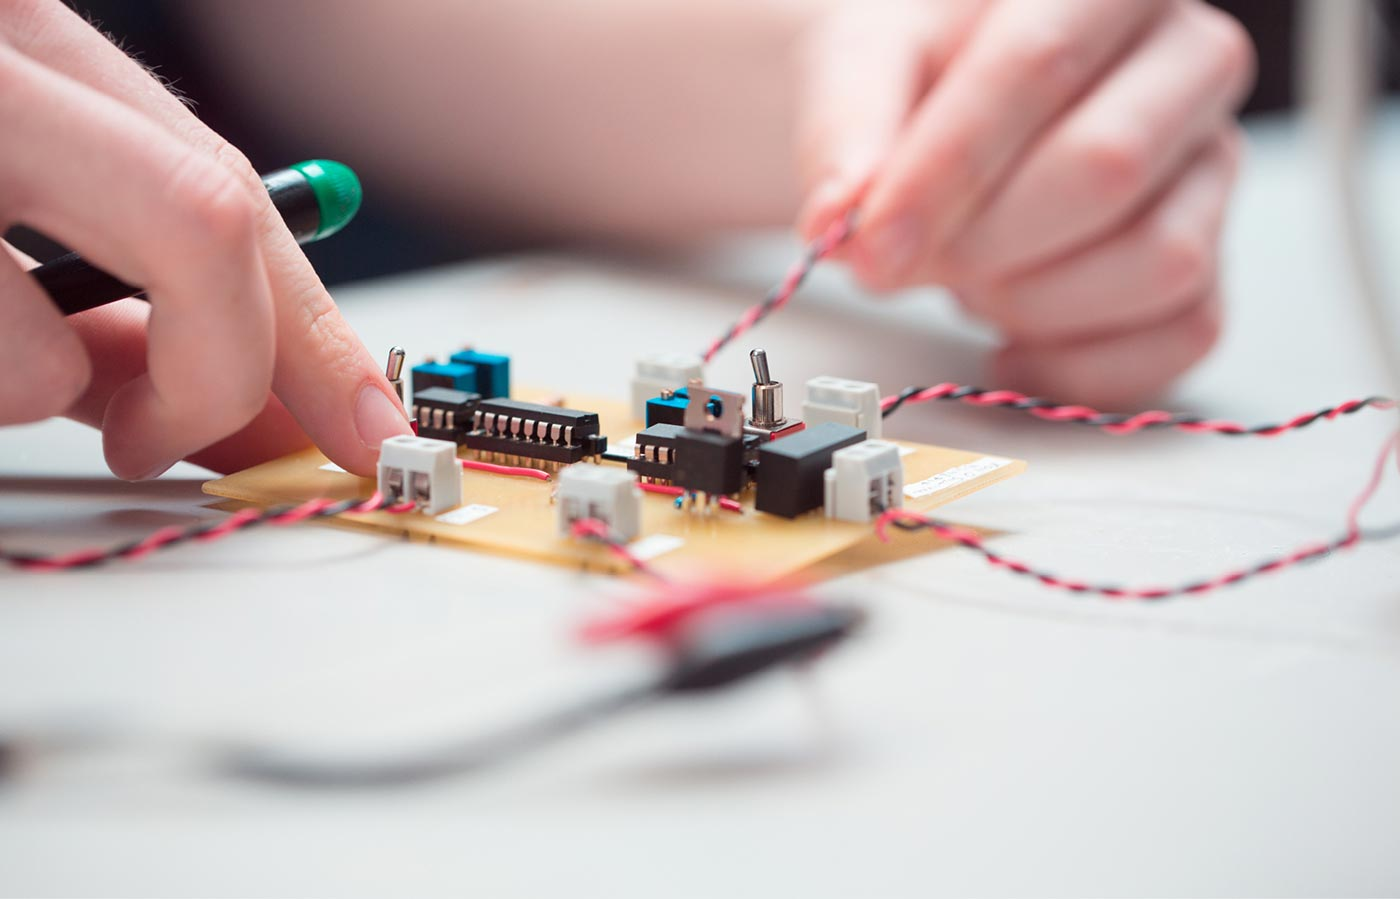 LIT Electrical and Electronic Engineering photography. Close-up of student working on electronics.